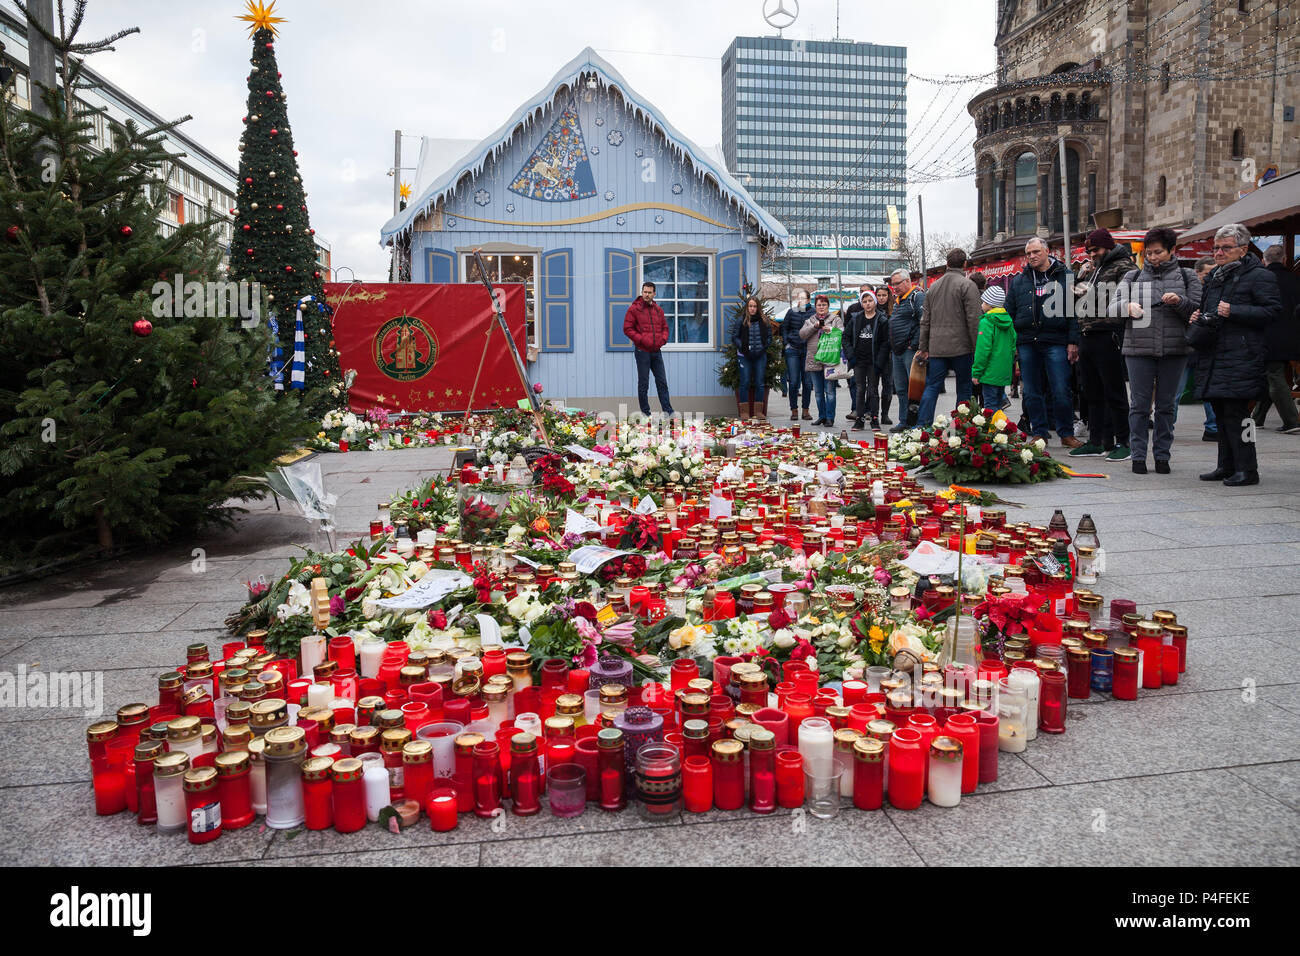 Berlin, Germany, victims' candles to commemorate the victims of the terrorist attack on Breitscheidplatz on 19 December 2016 - Stock Image